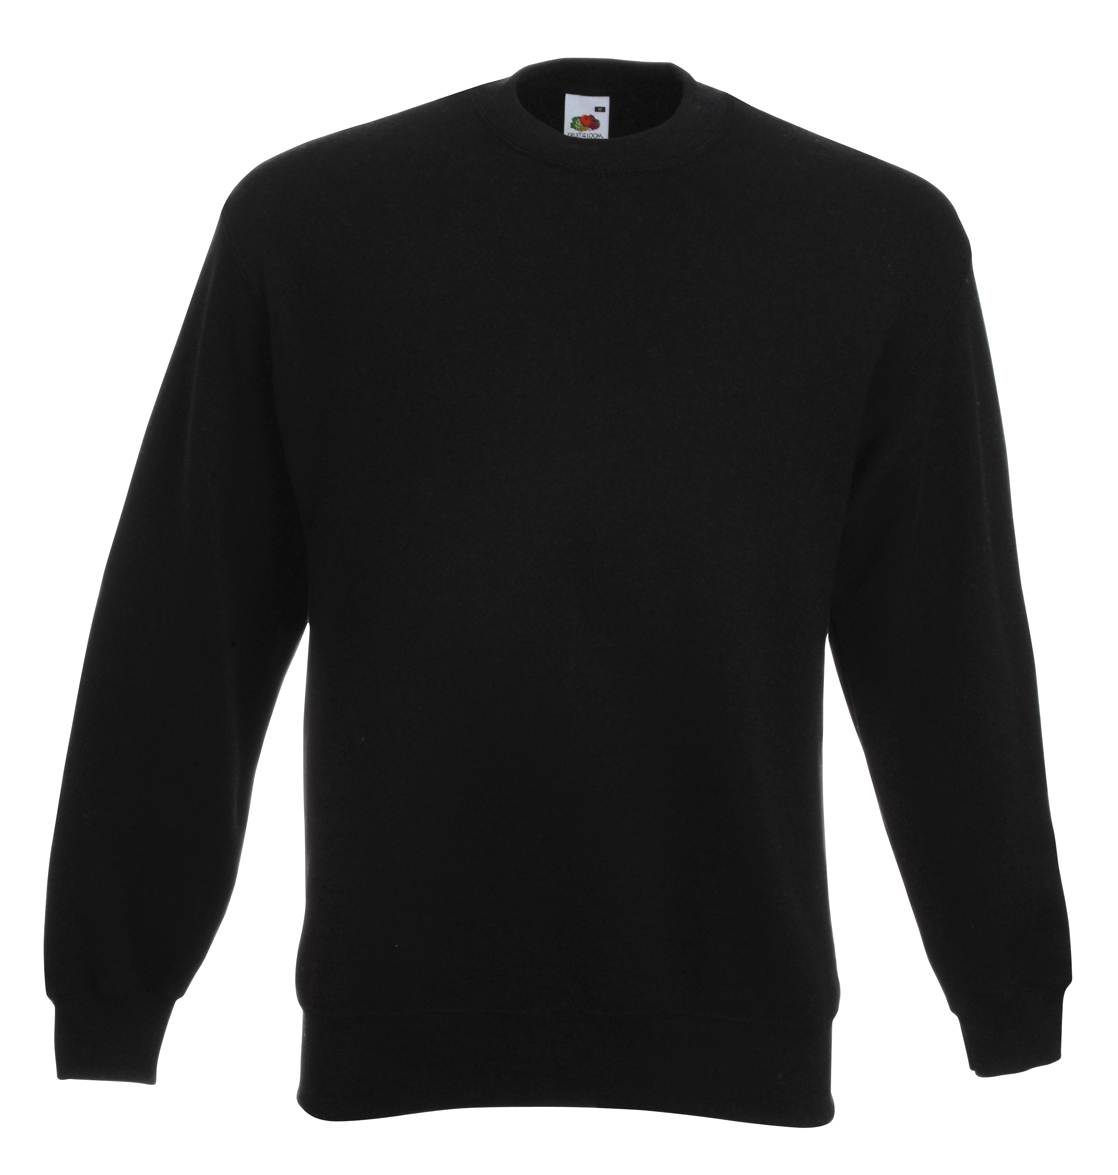 Fruit of the Loom Set-In Sweater 622020 Black